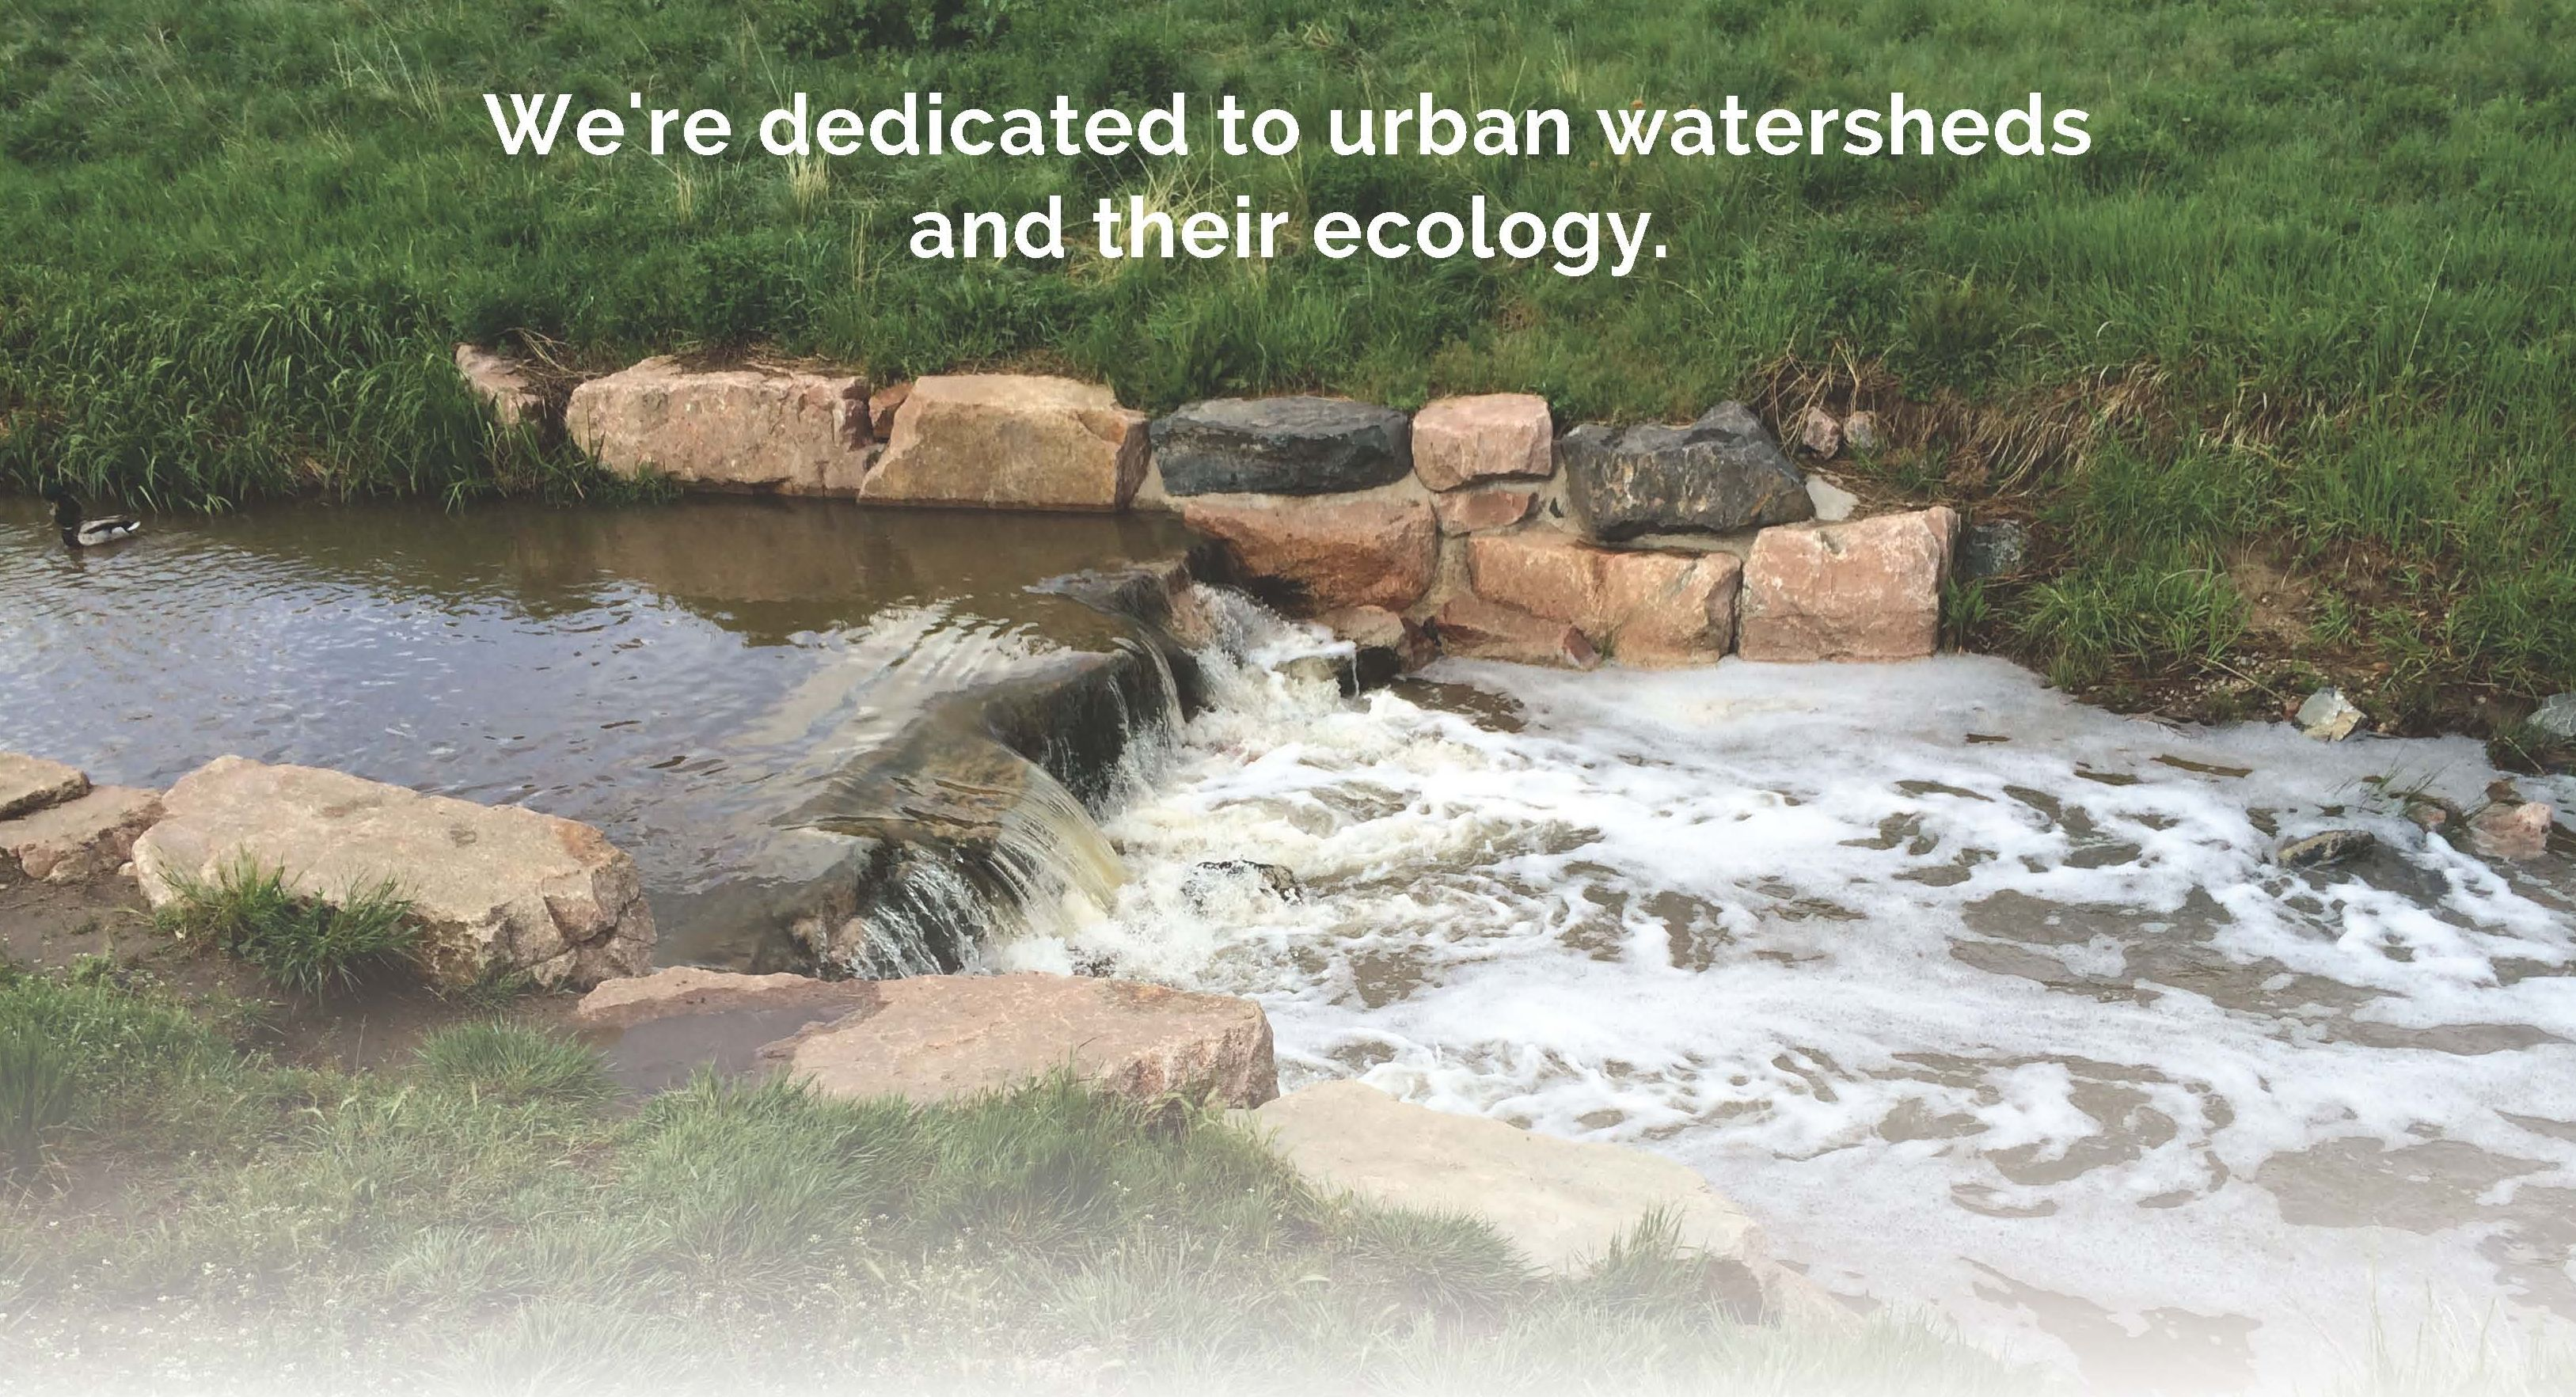 Image Credit: Urban Watersheds Research Institute